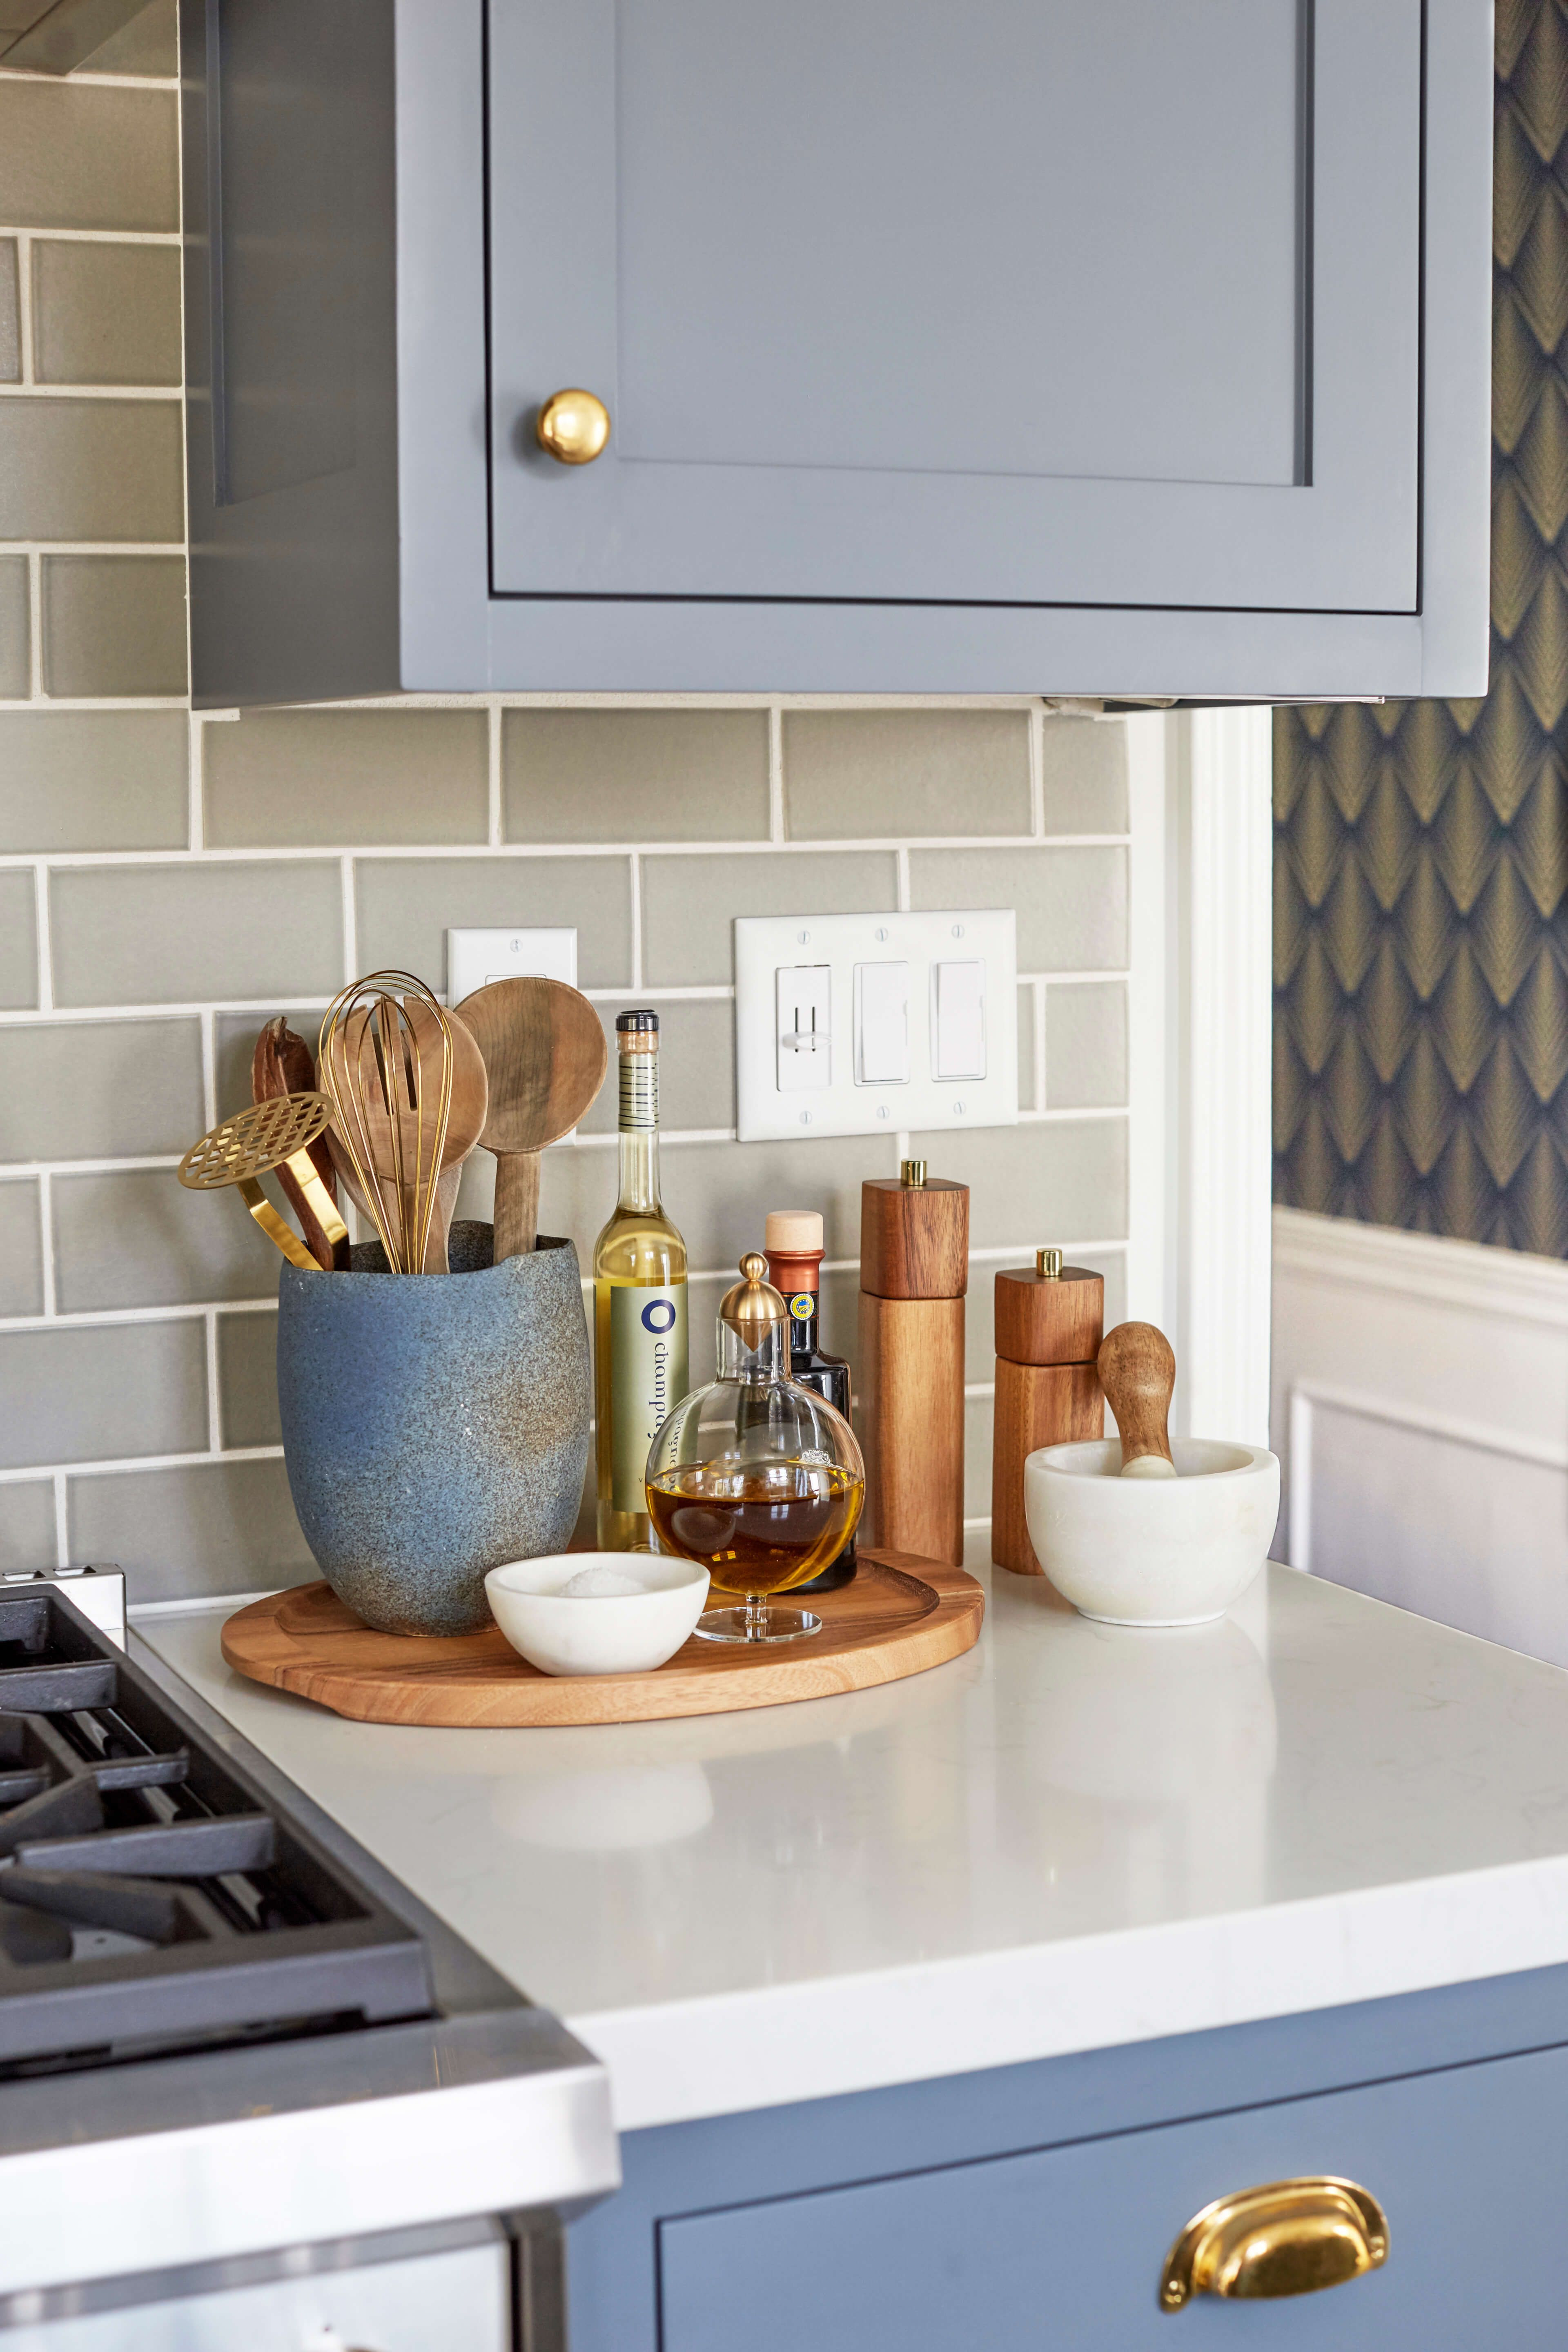 Best ideas about Chef Kitchen Decor Family Dollar . Save or Pin Chef Kitchen Decor Family Dollar Best 5 Ways to Style Now.